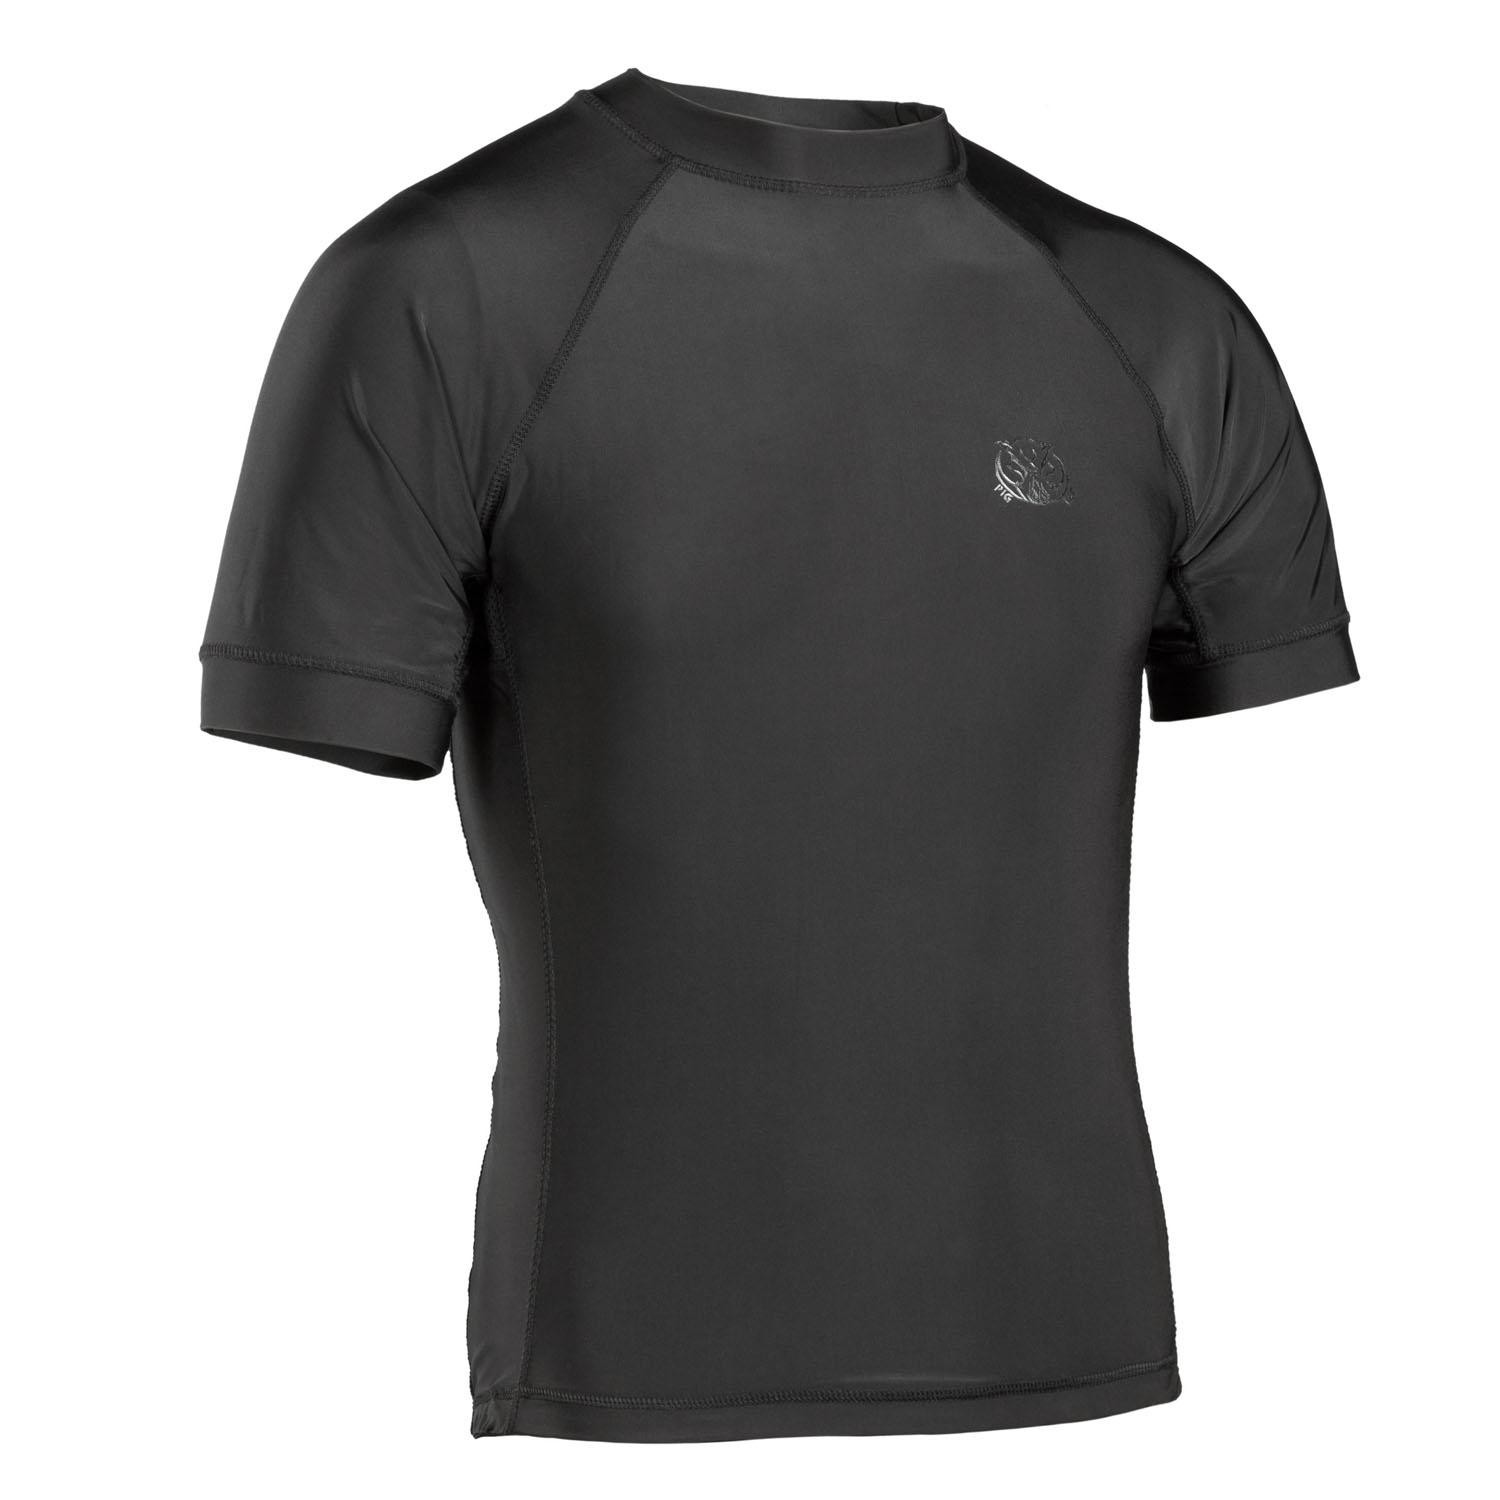 Hot climate tactical moisture wicking t-shirt